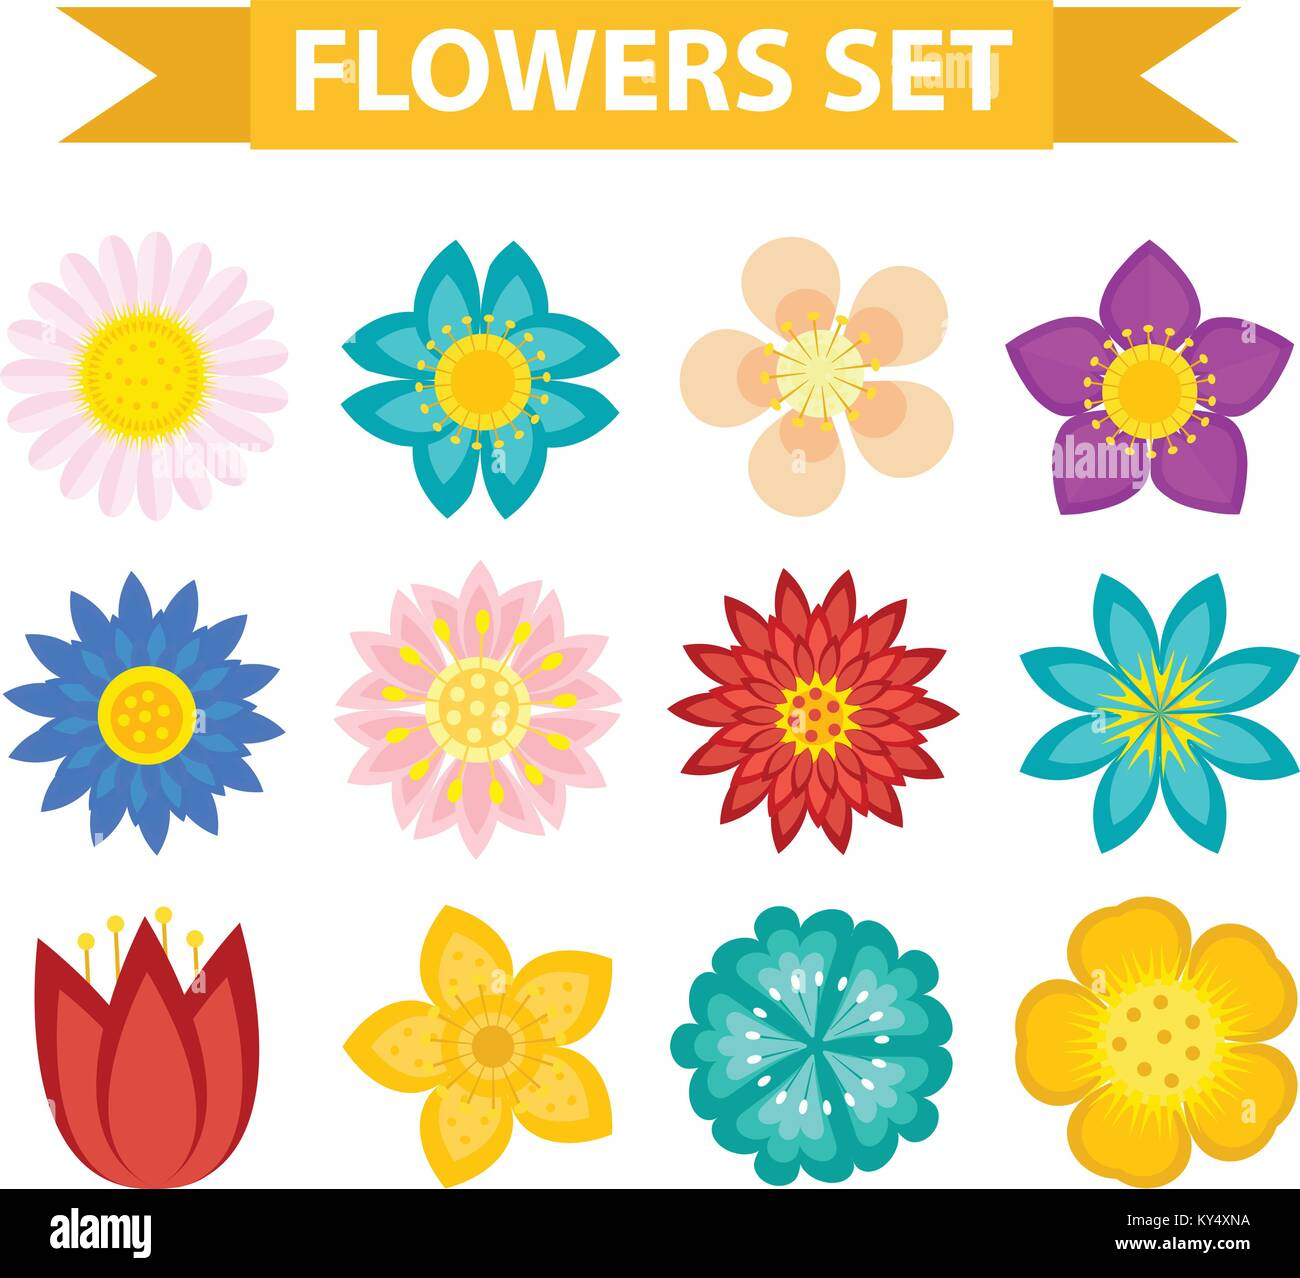 Flowers and leaves icon set flat style floral collection floral collection isolated on white background spring summer design elements for invitation wedding or greeting cardsctor illustration stopboris Choice Image